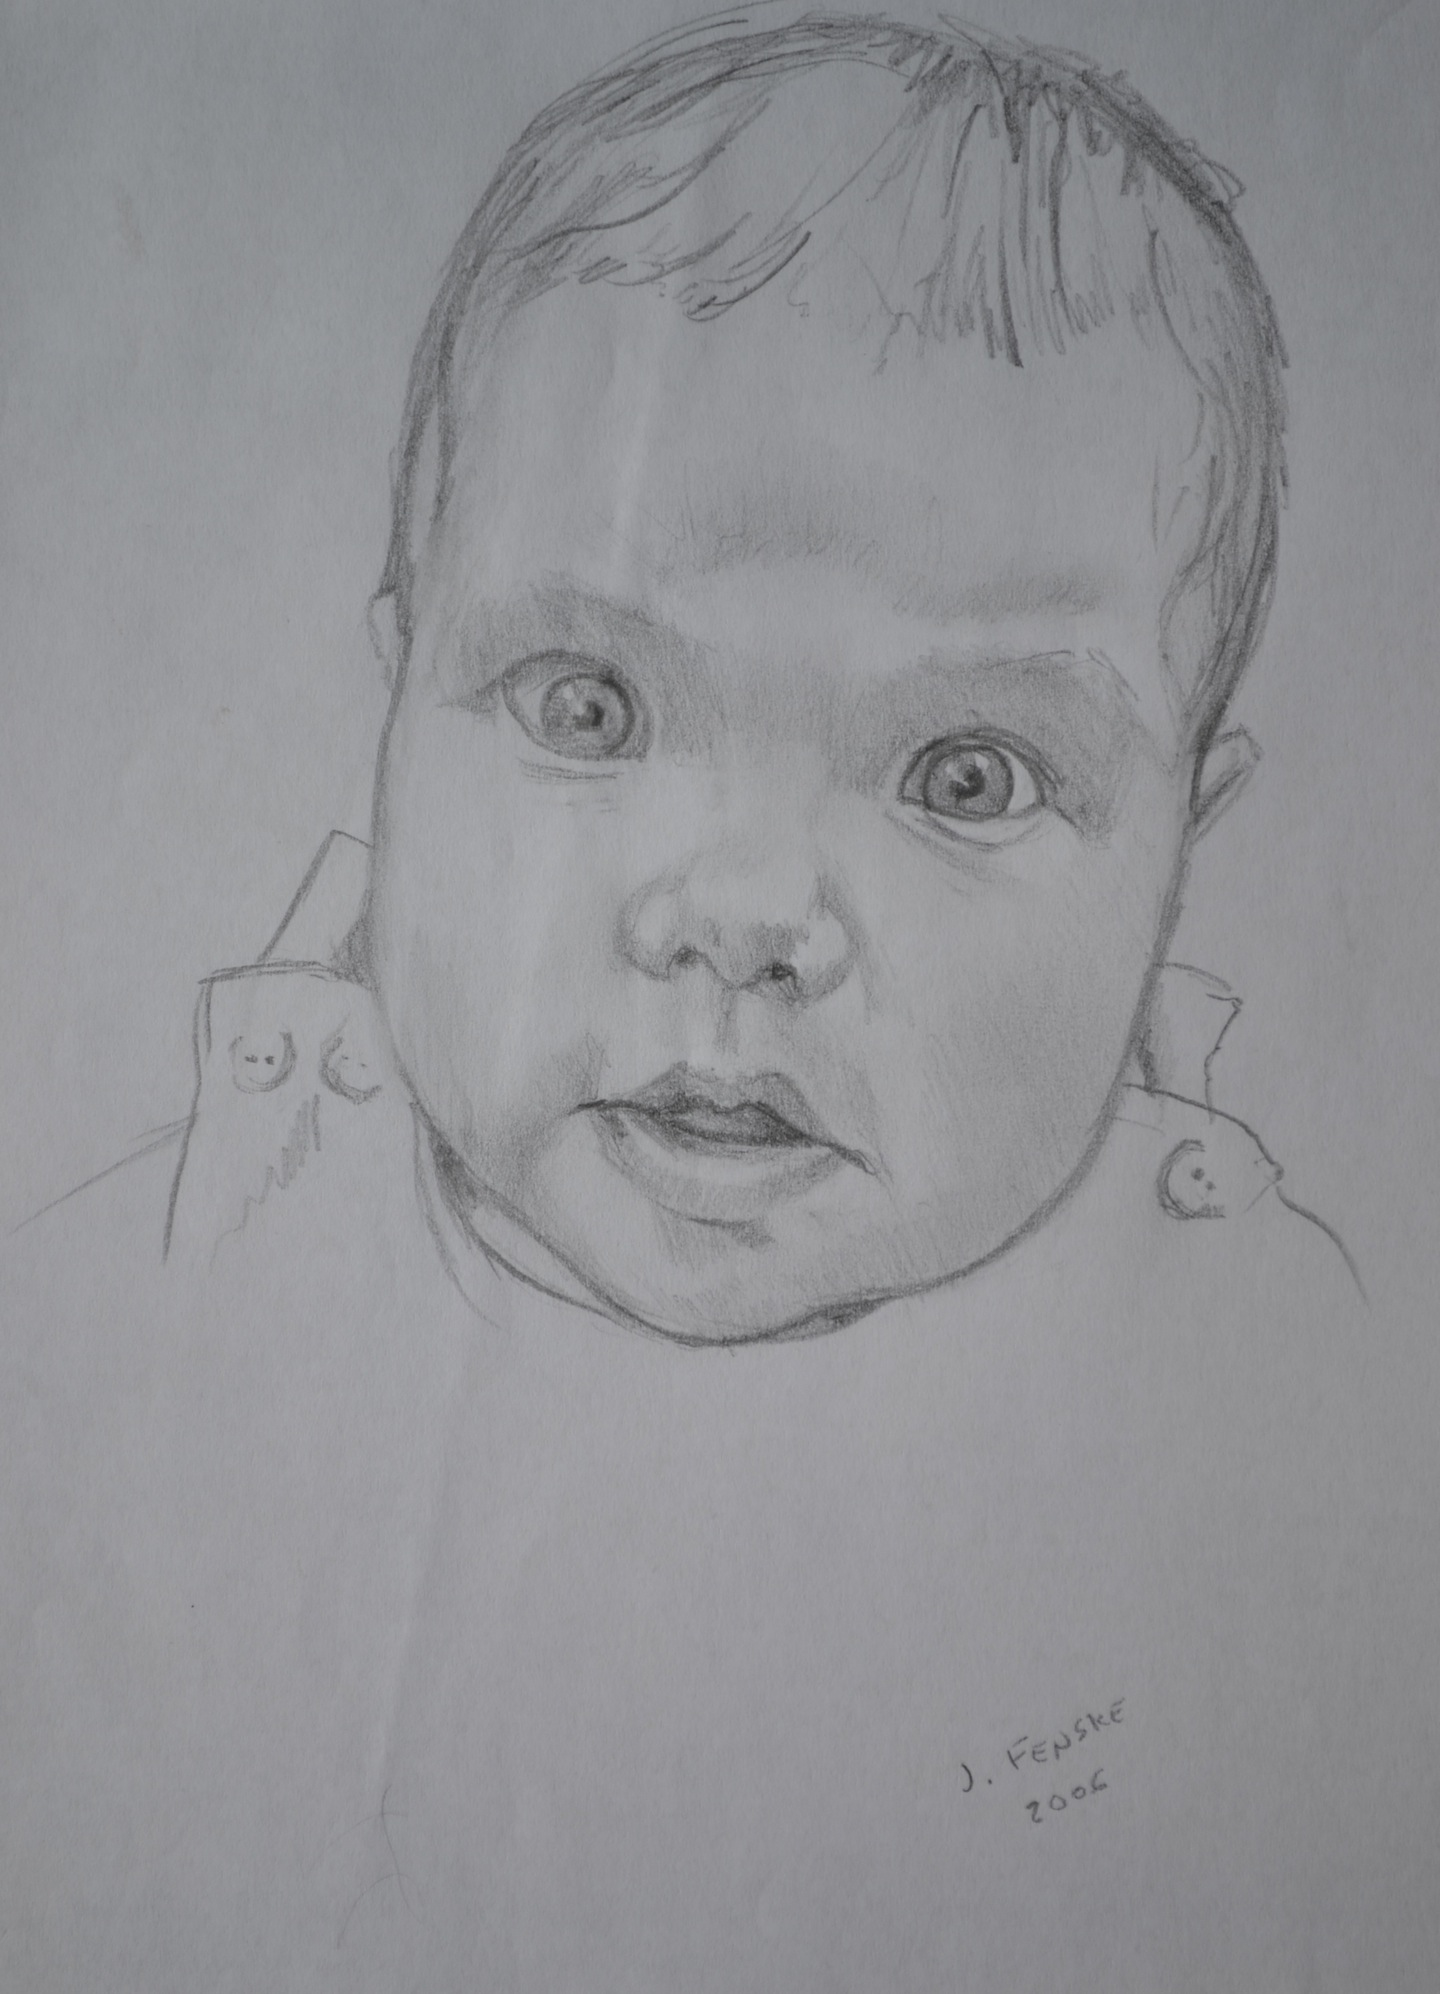 A sketch of a surprised baby by Jonathan Fenske